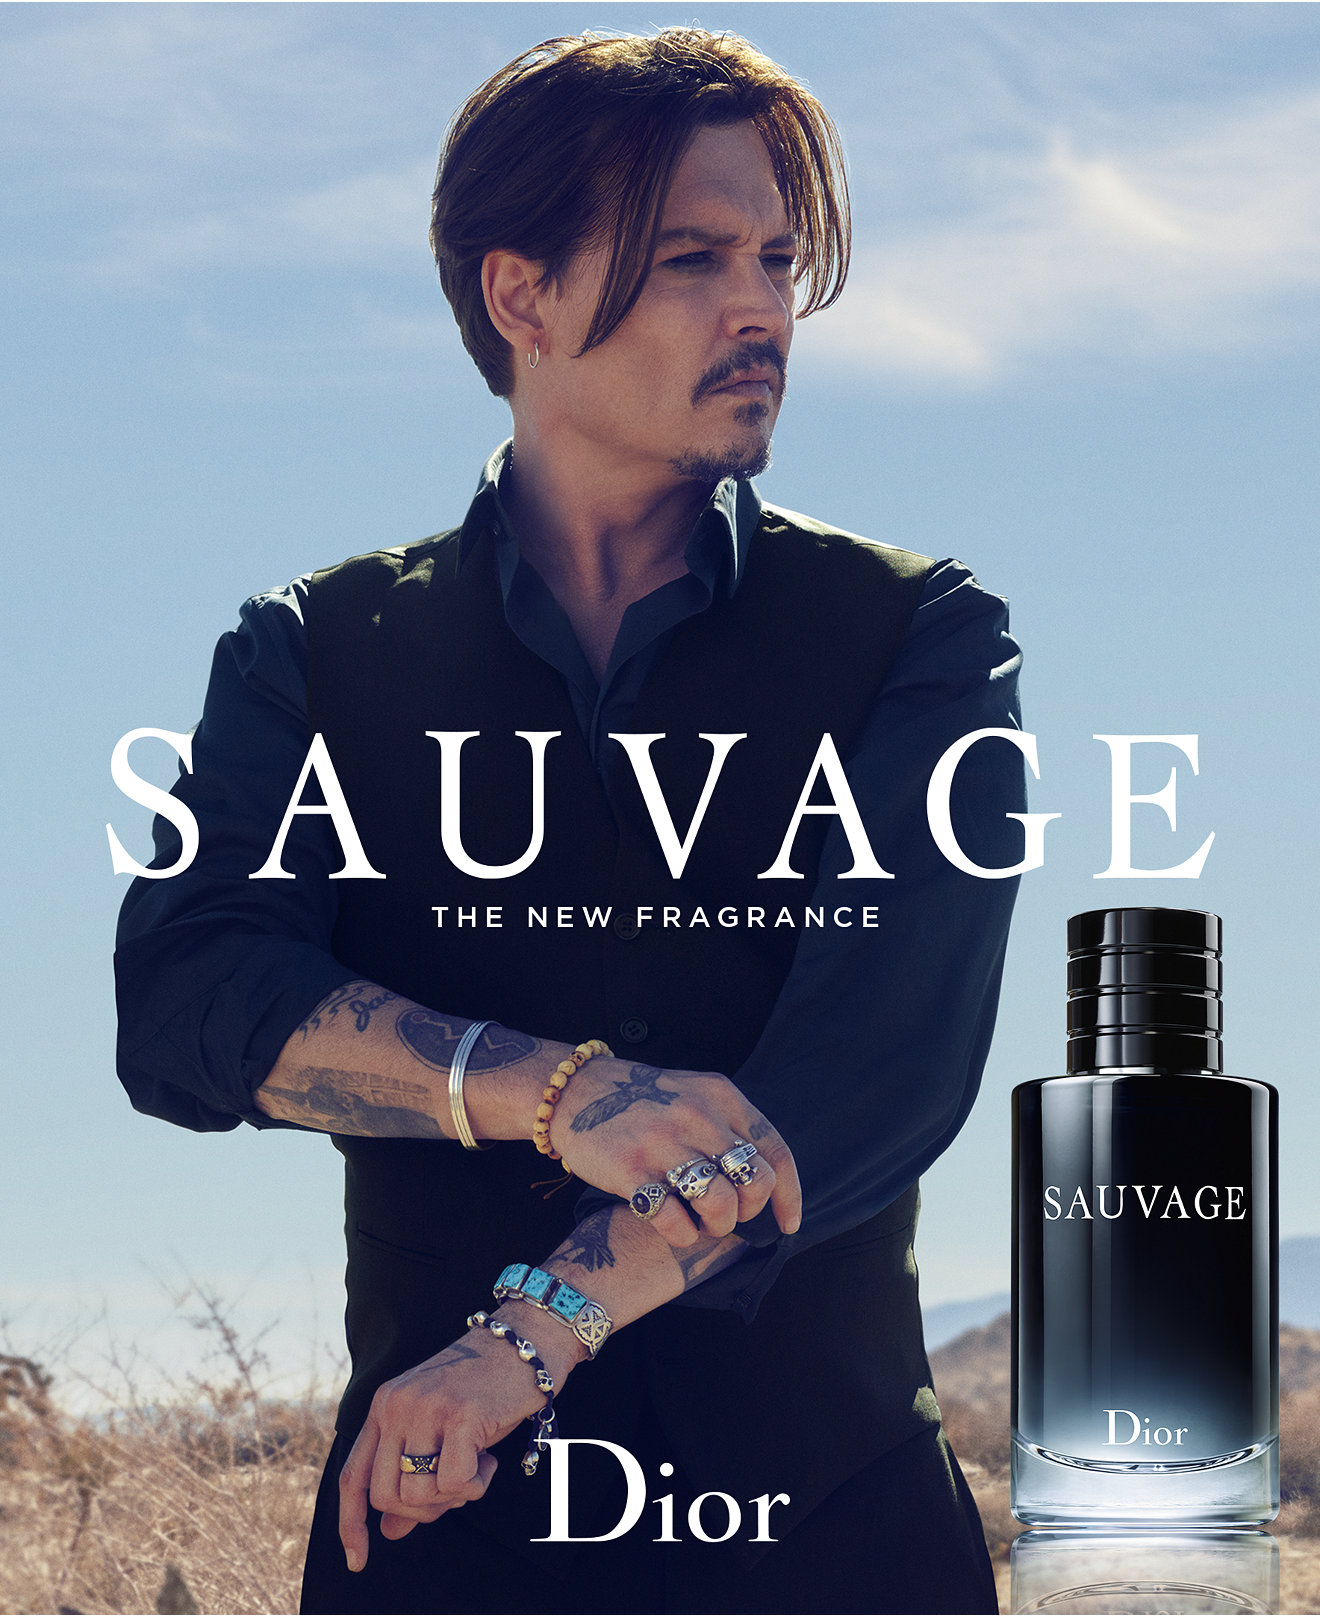 Dior Sauvage Fragrance Collection For Men